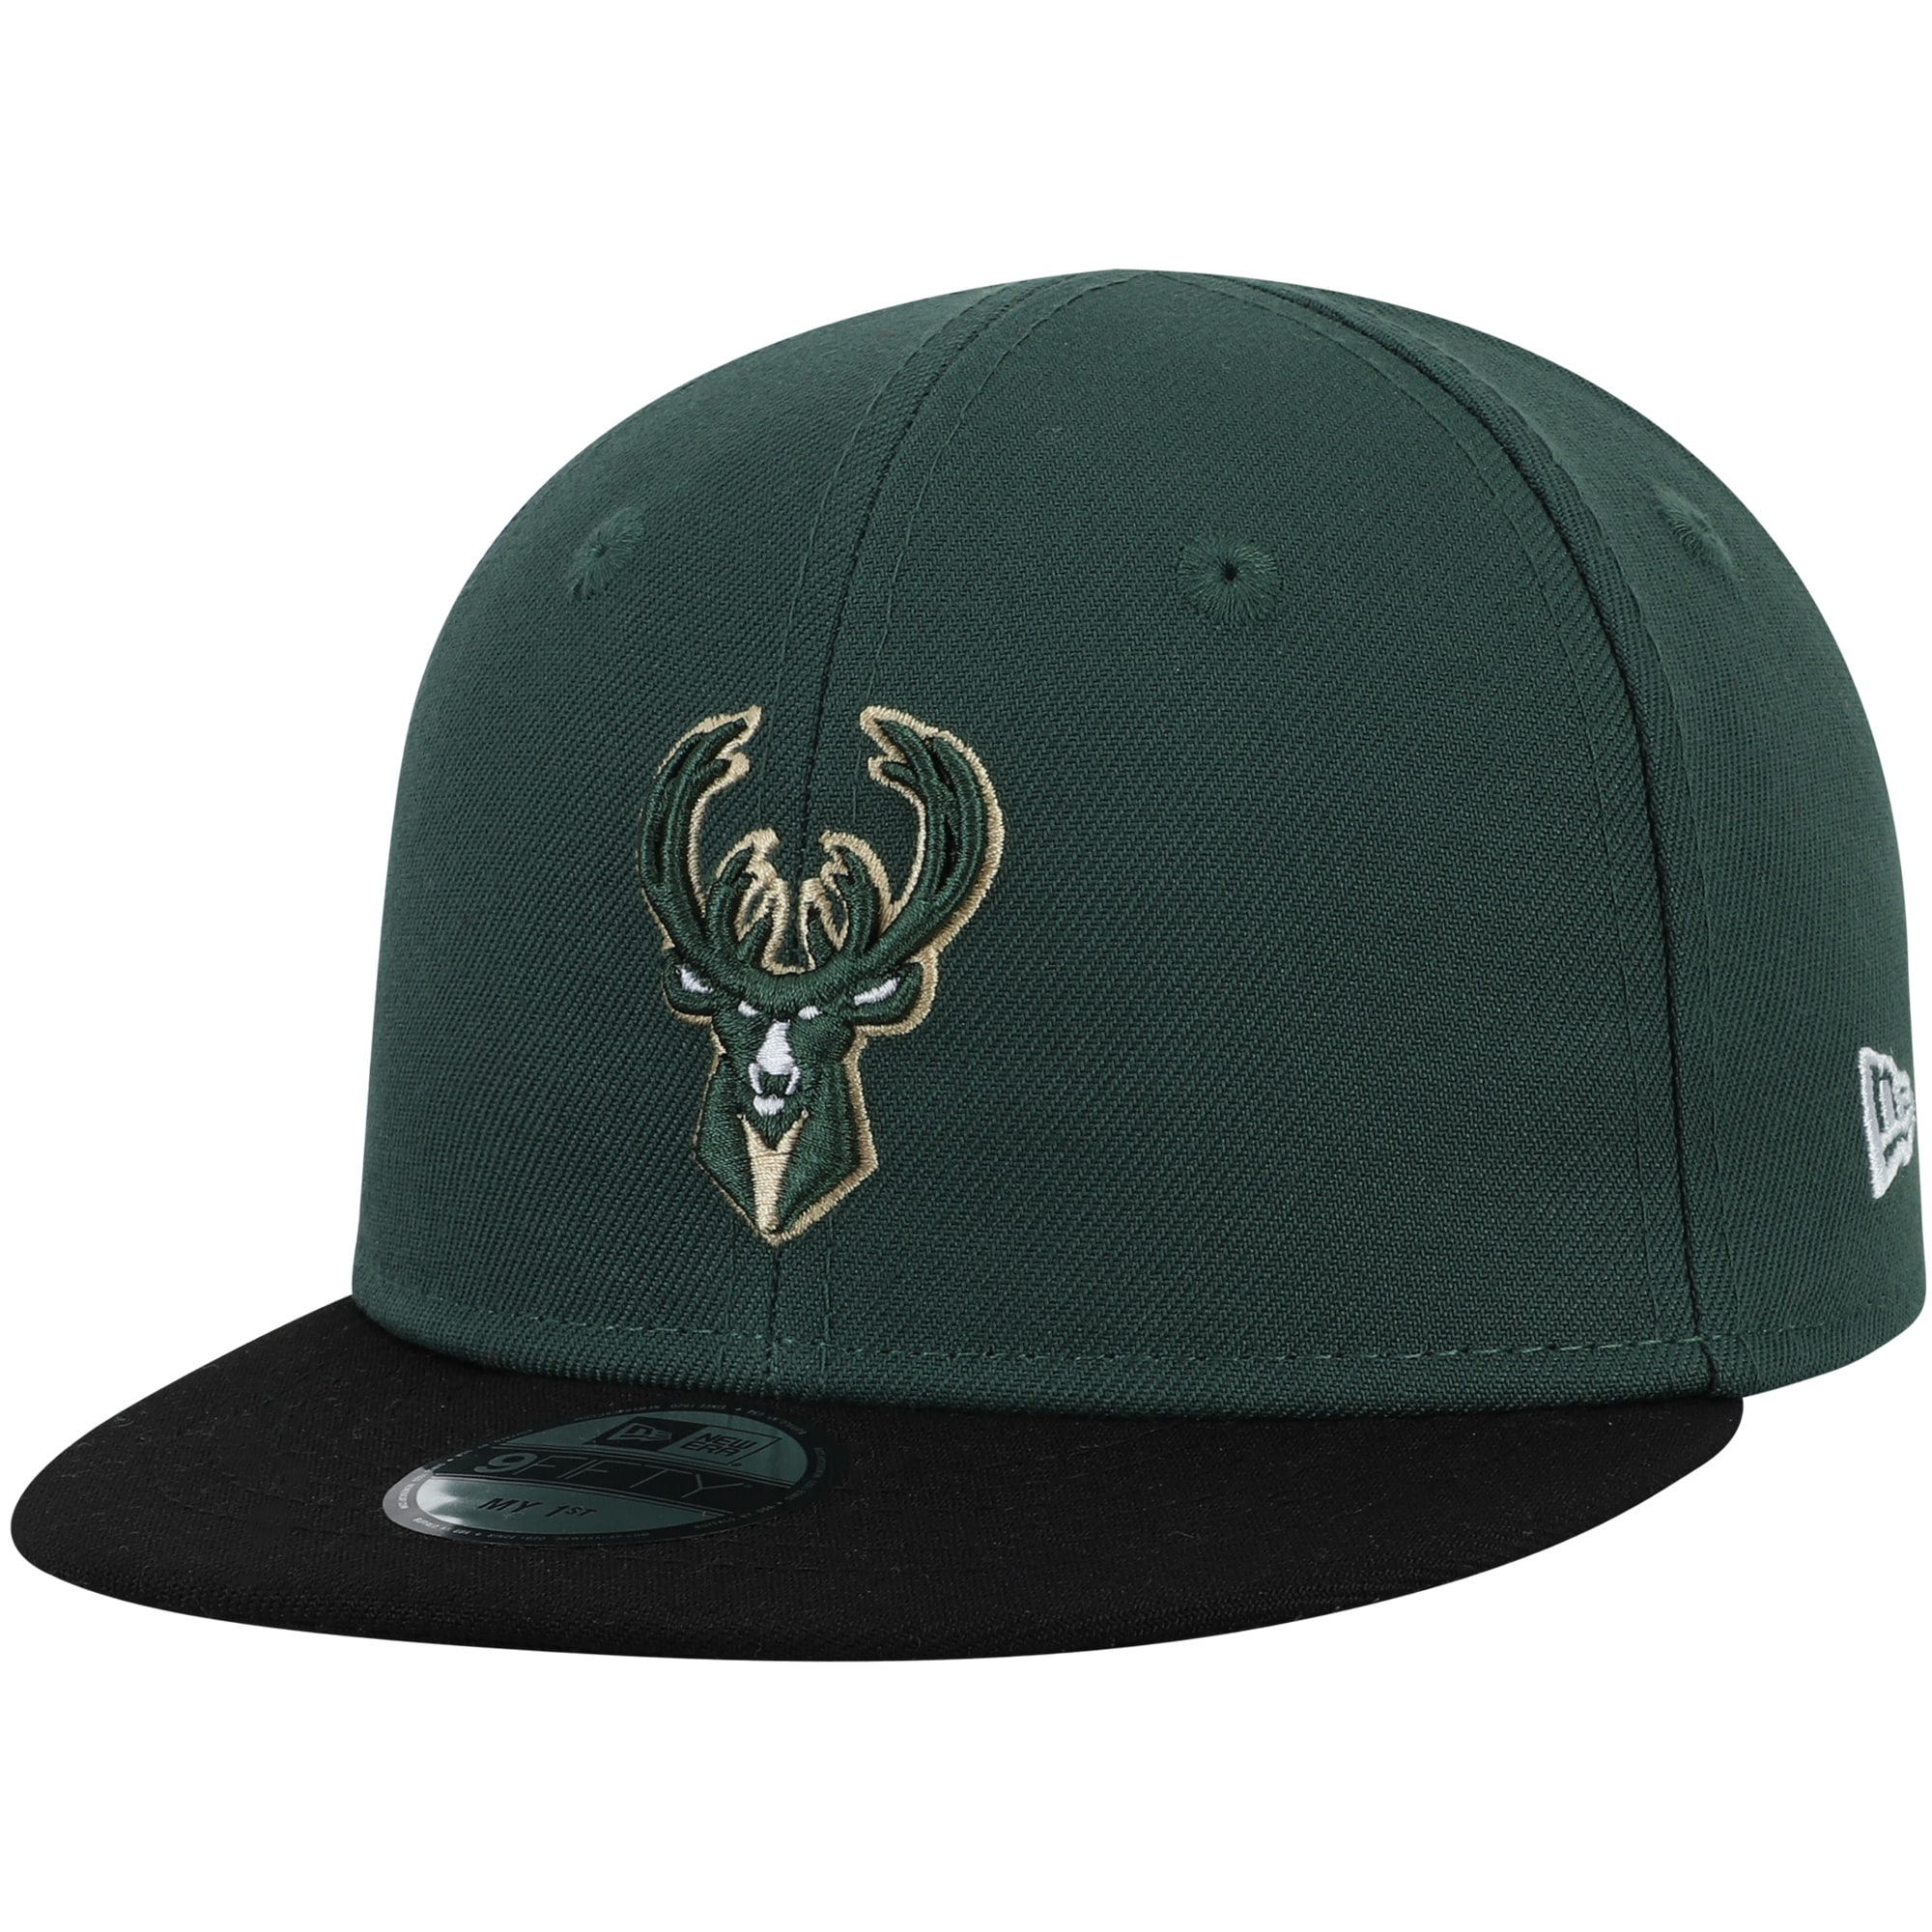 Milwaukee Bucks New Era Infant My First 9FIFTY Adjustable Hat - Hunter Green/Black